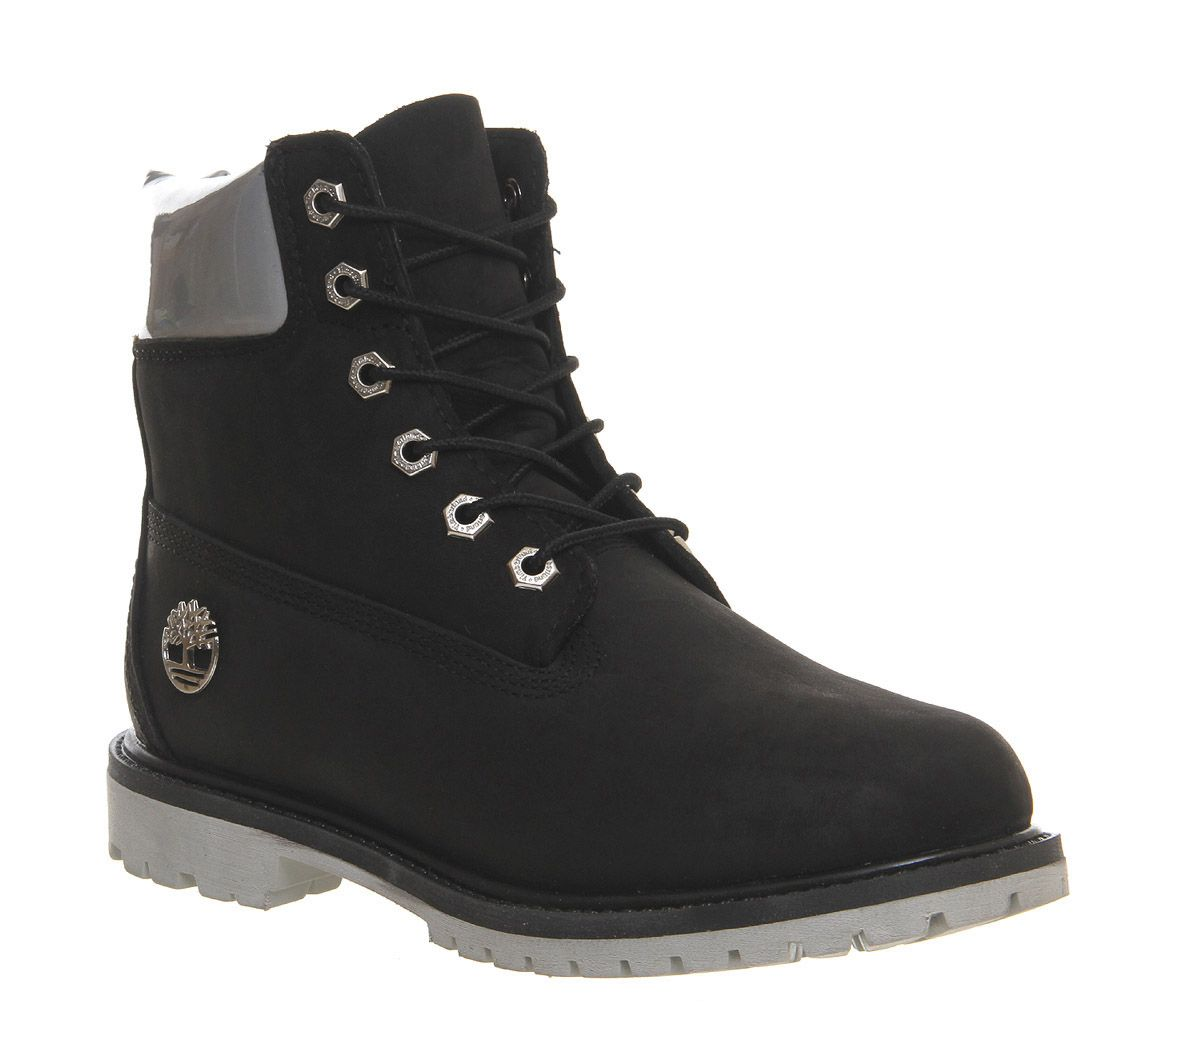 Timberland Premium 6 Boots Black Iridescent Cuff - Ankle Boots